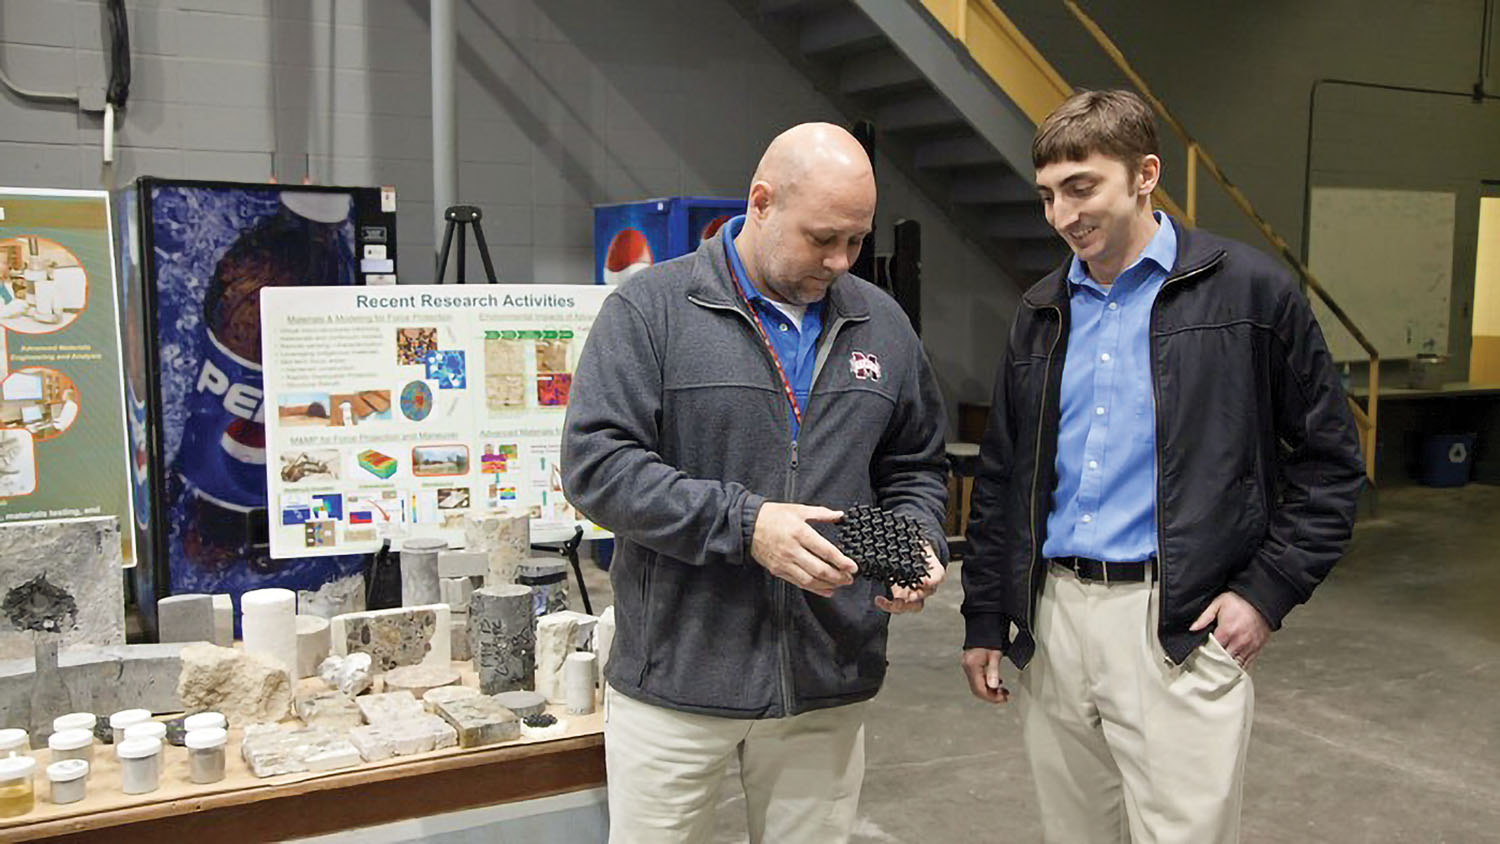 Brian Lucarelli, right, a civil engineer in the Pittsburgh Engineer District, tours the Geotechnical and Structures Laboratory at the U.S. Army Engineer Research and Development Center in Vicksburg, Miss. At left is the lab's Concrete and Material Branch Chief Christopher Moore, who is holding a sample of  polylactic acid material, which is 3-D printed into a lattice structure to enhance structural performance and energy dispersion.